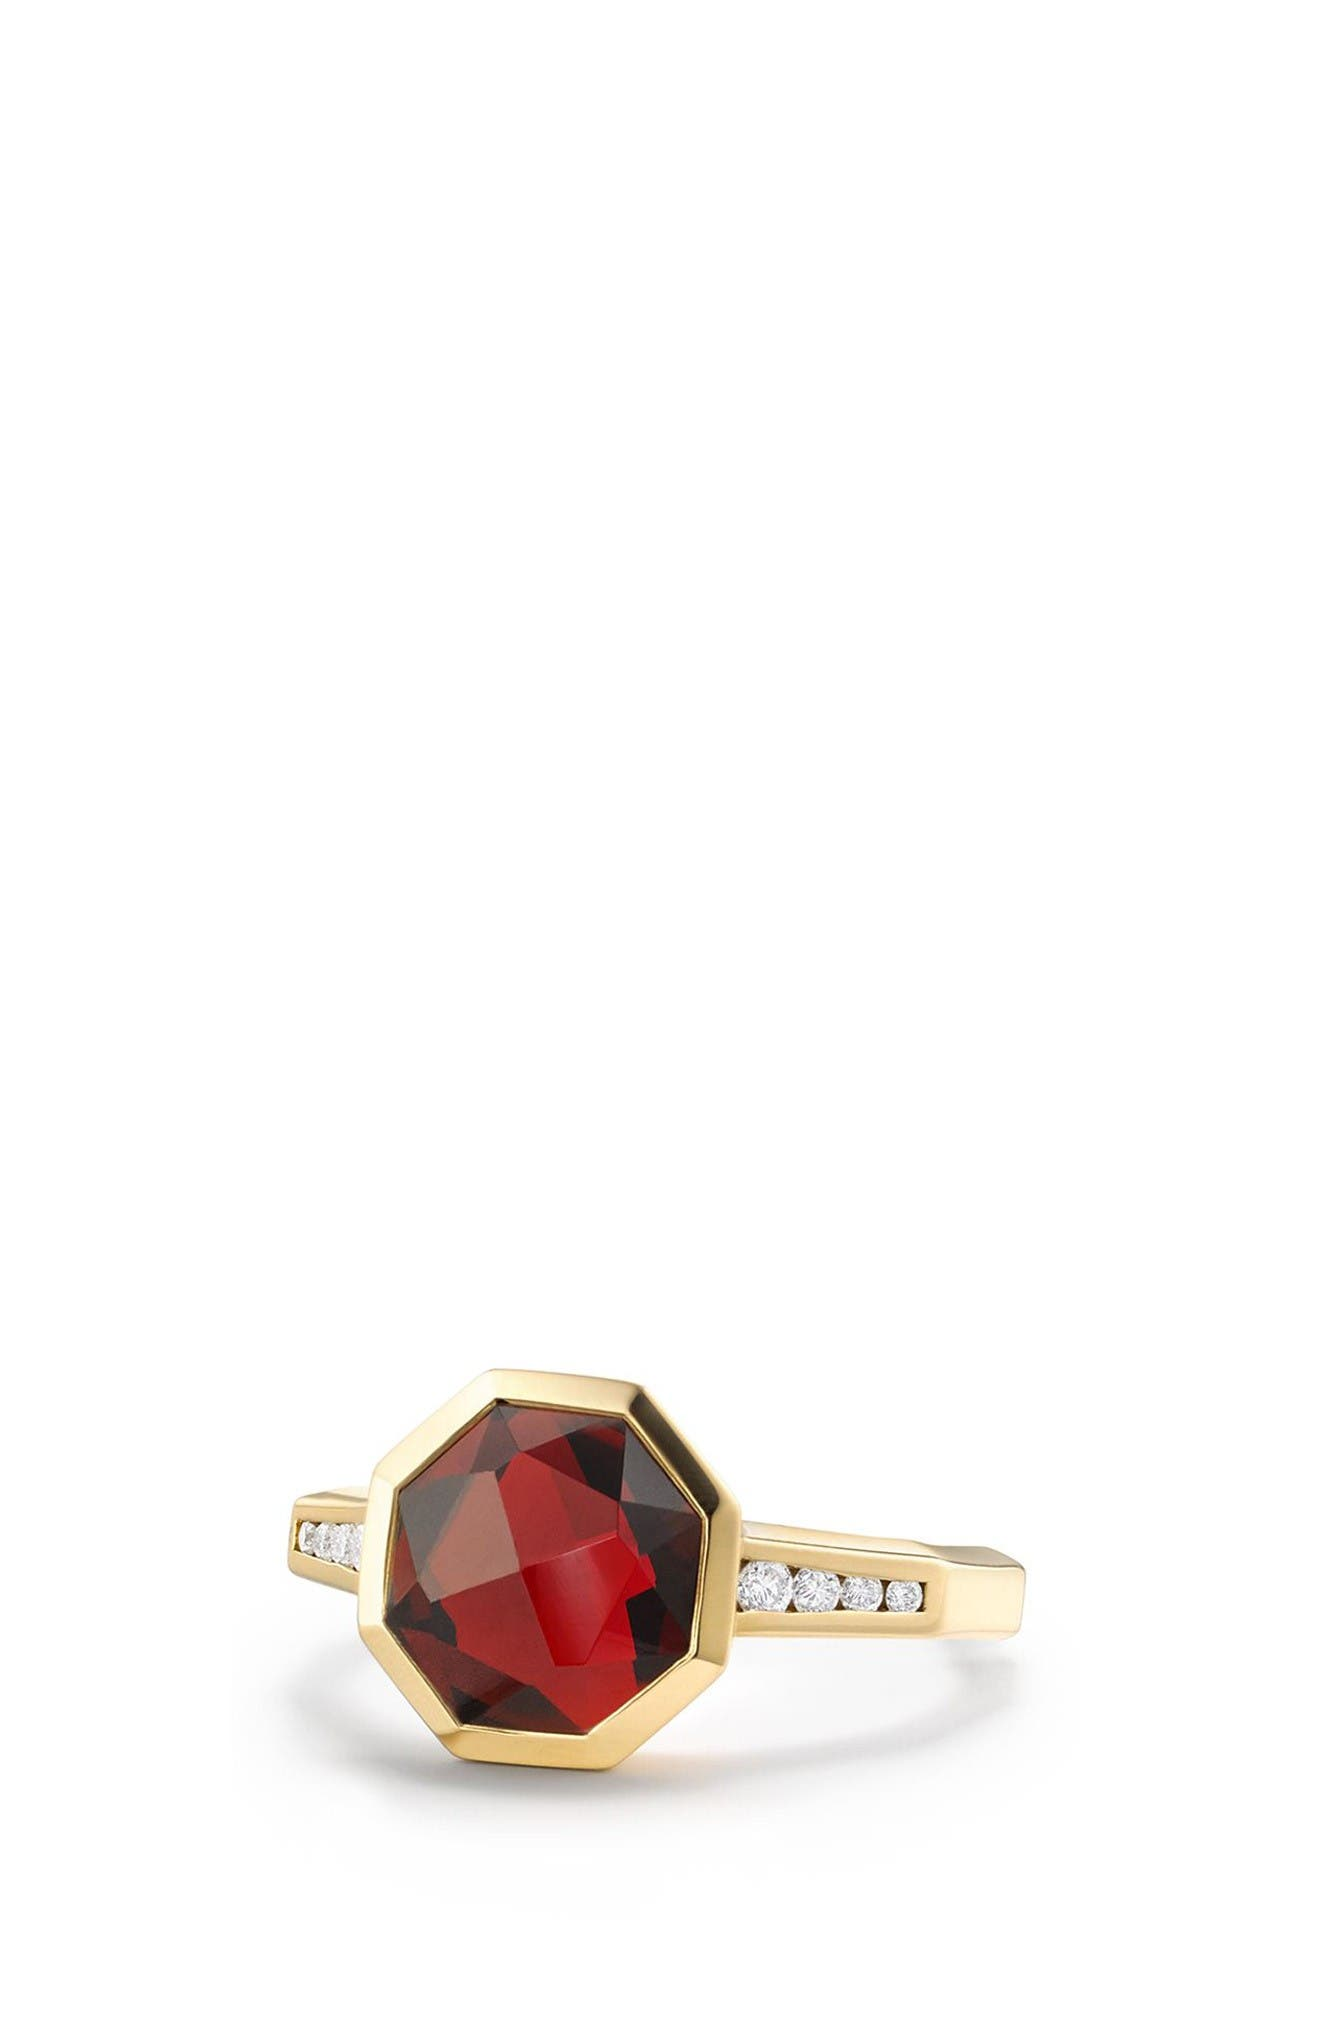 DAVID YURMAN Guilin Octagon Ring with Diamonds in 18K Gold